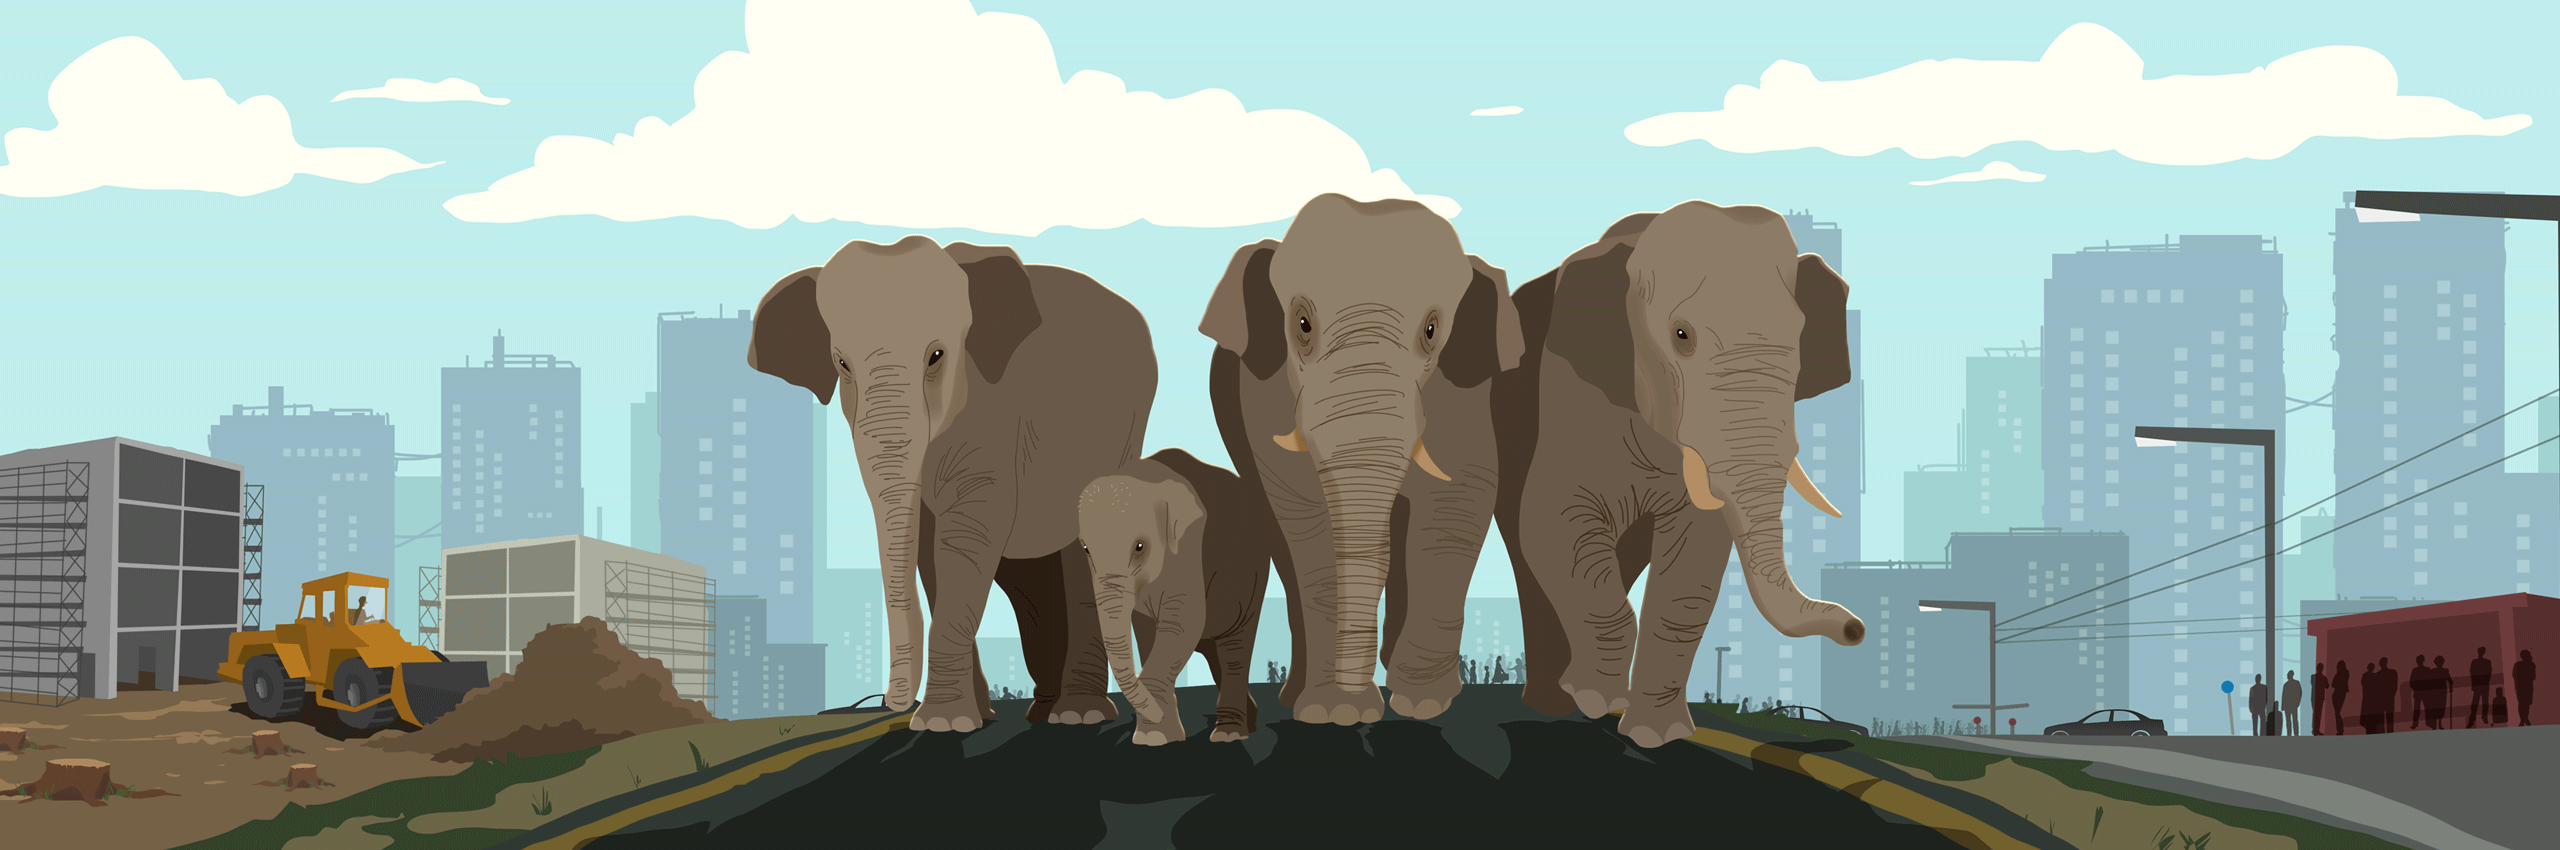 Elephants with a bulldozer in the distance